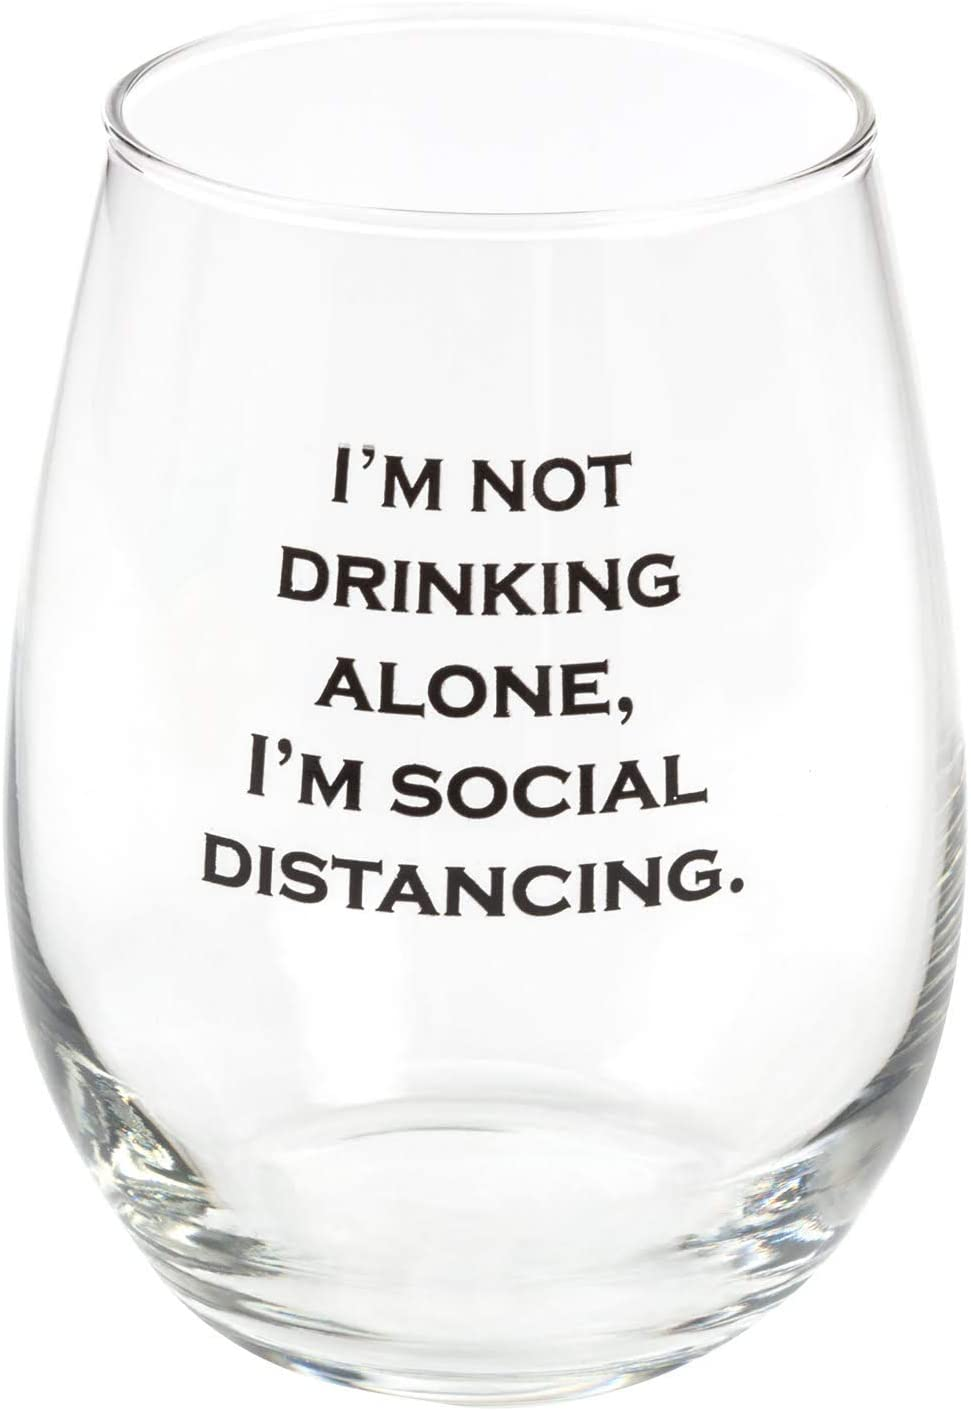 Wine Gifts For Women - Funny Wine Glasses - Quarantine Gifts - Social Distancing Wine Glass